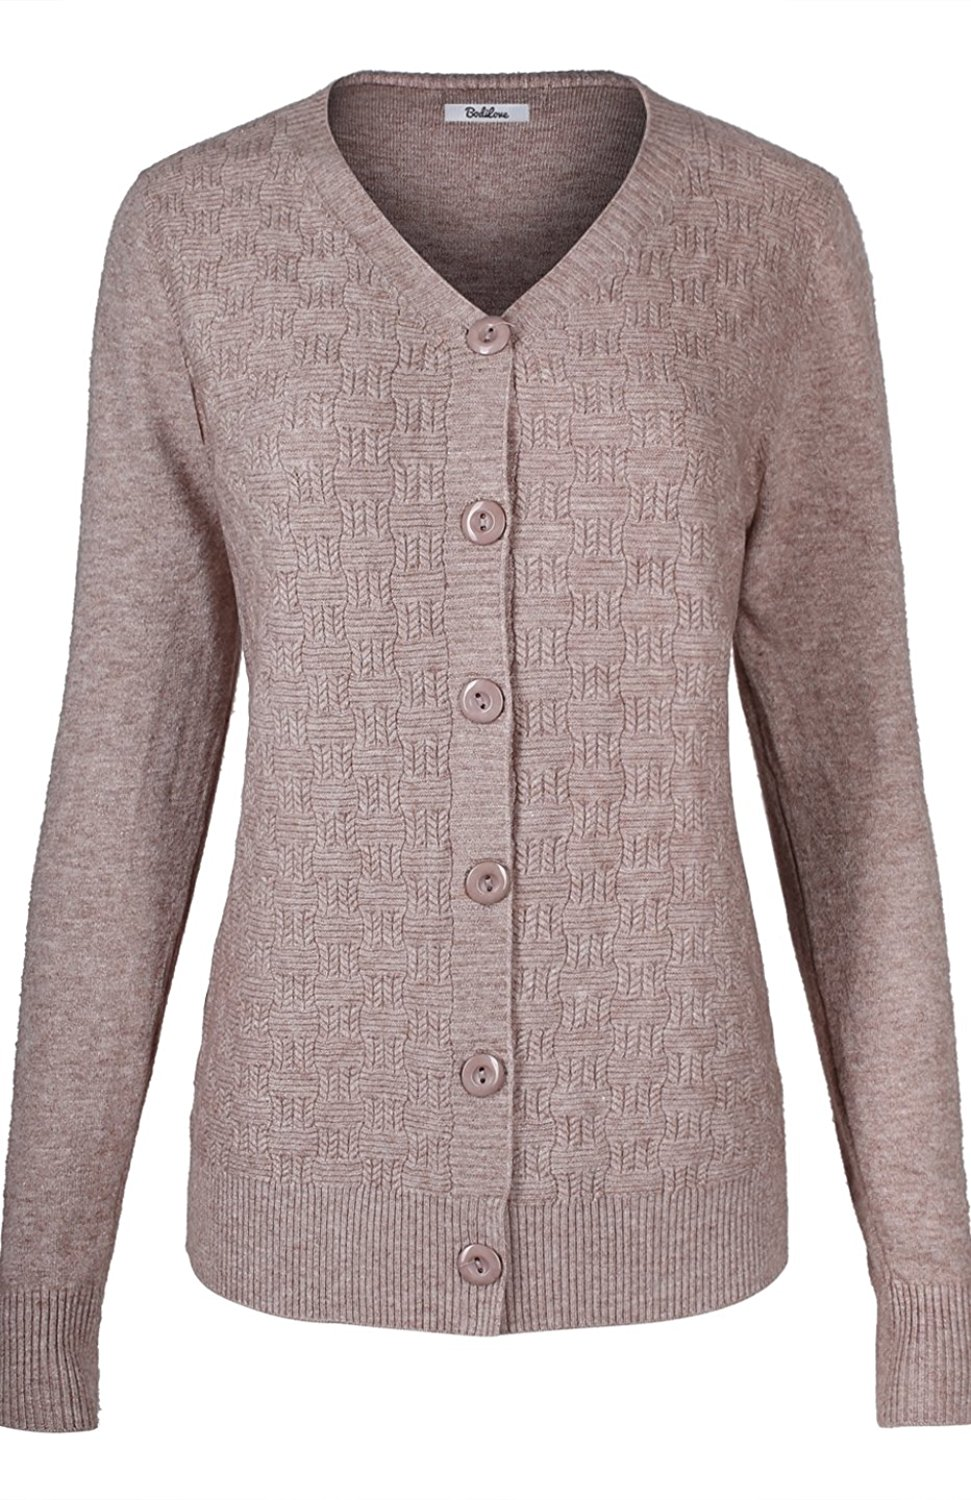 296796797a Get Quotations · 2LUV Women s Long Sleeve V-Neck Button Down Classic Fit Knit  Cardigan